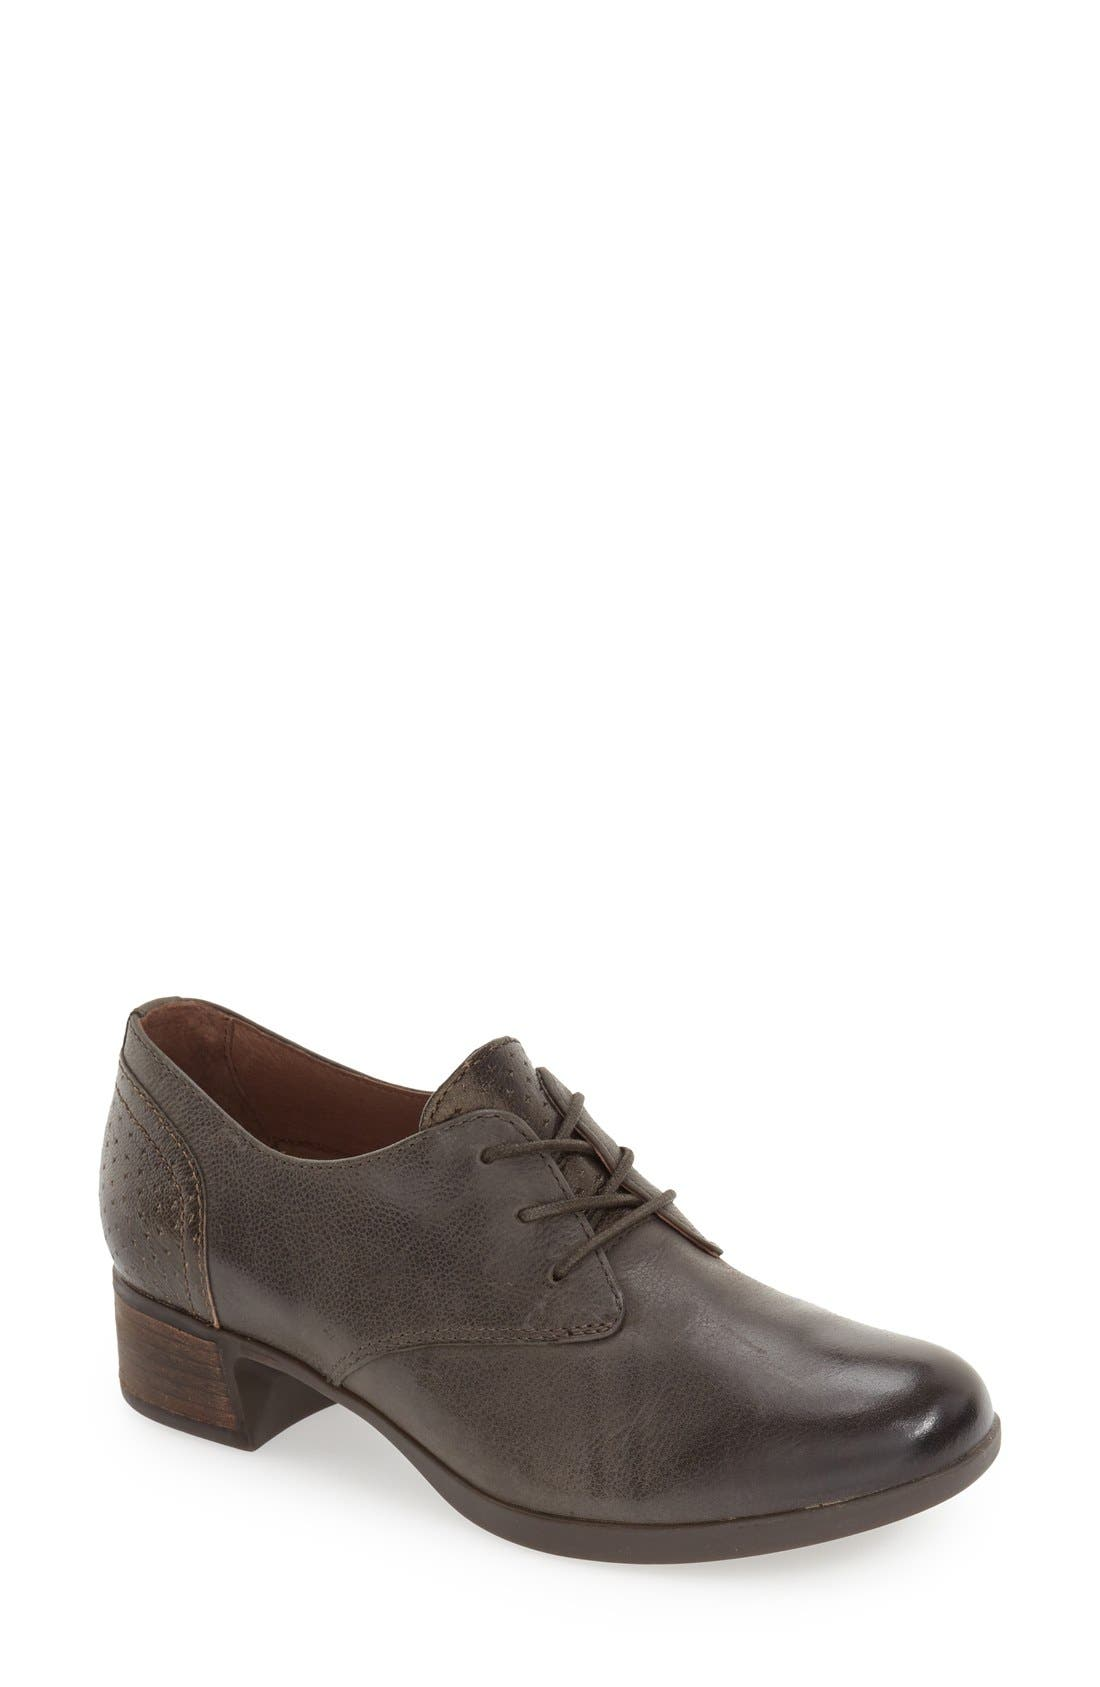 Dansko 'Louise' Round Toe Derby (Women)